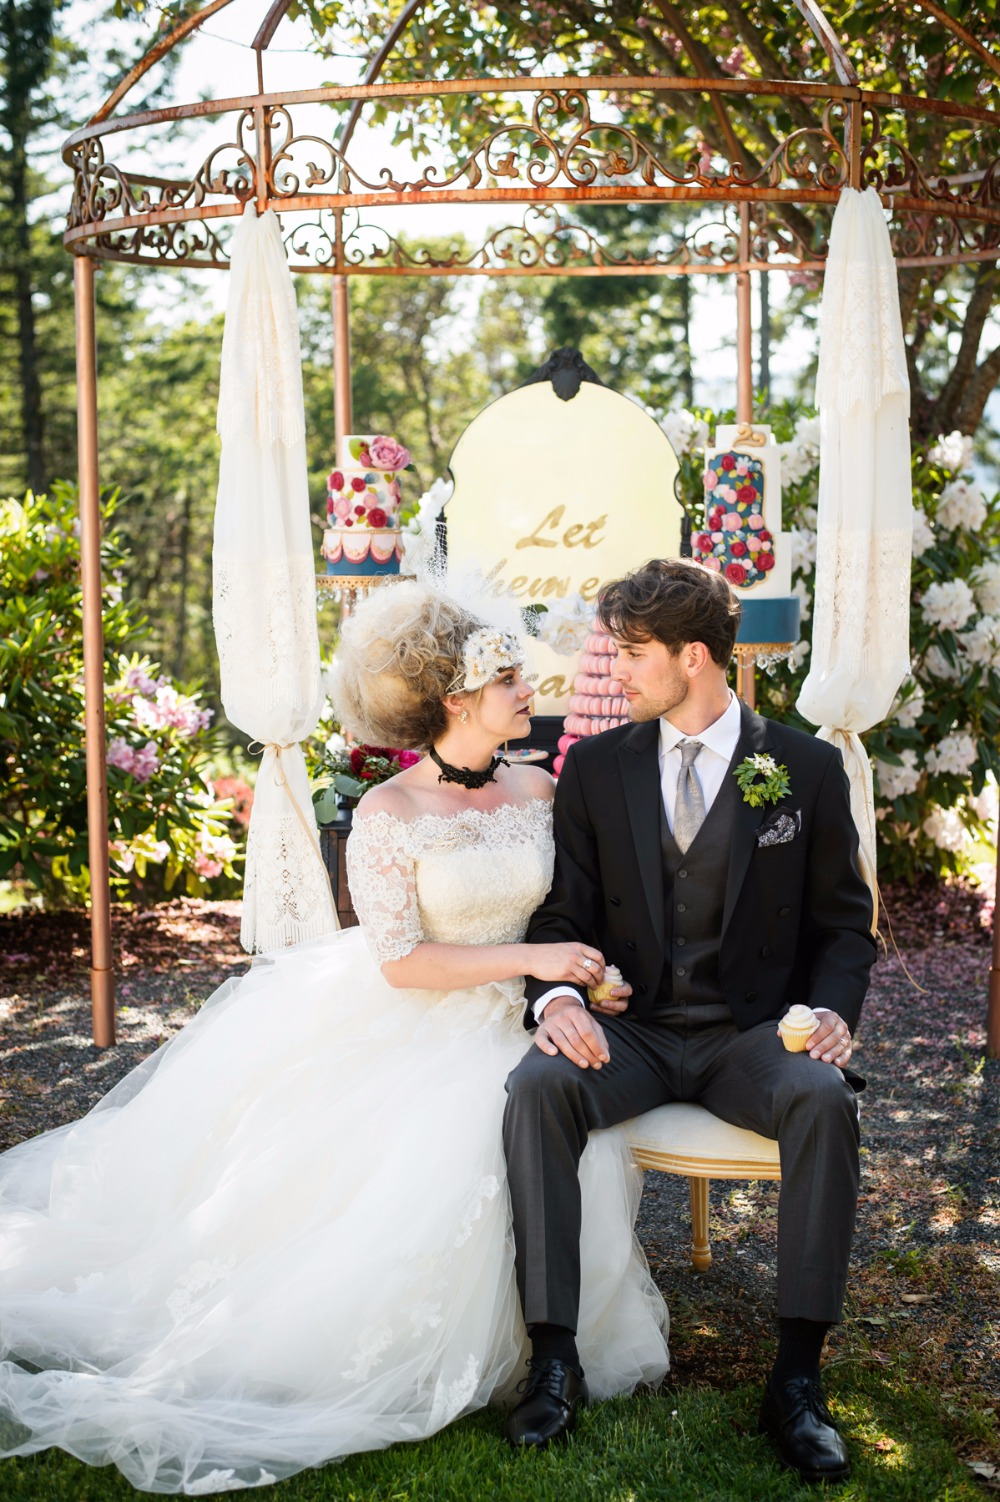 10_a-colorful-over-the-top-wedding-inspired-by-marie-antoinette.jpg